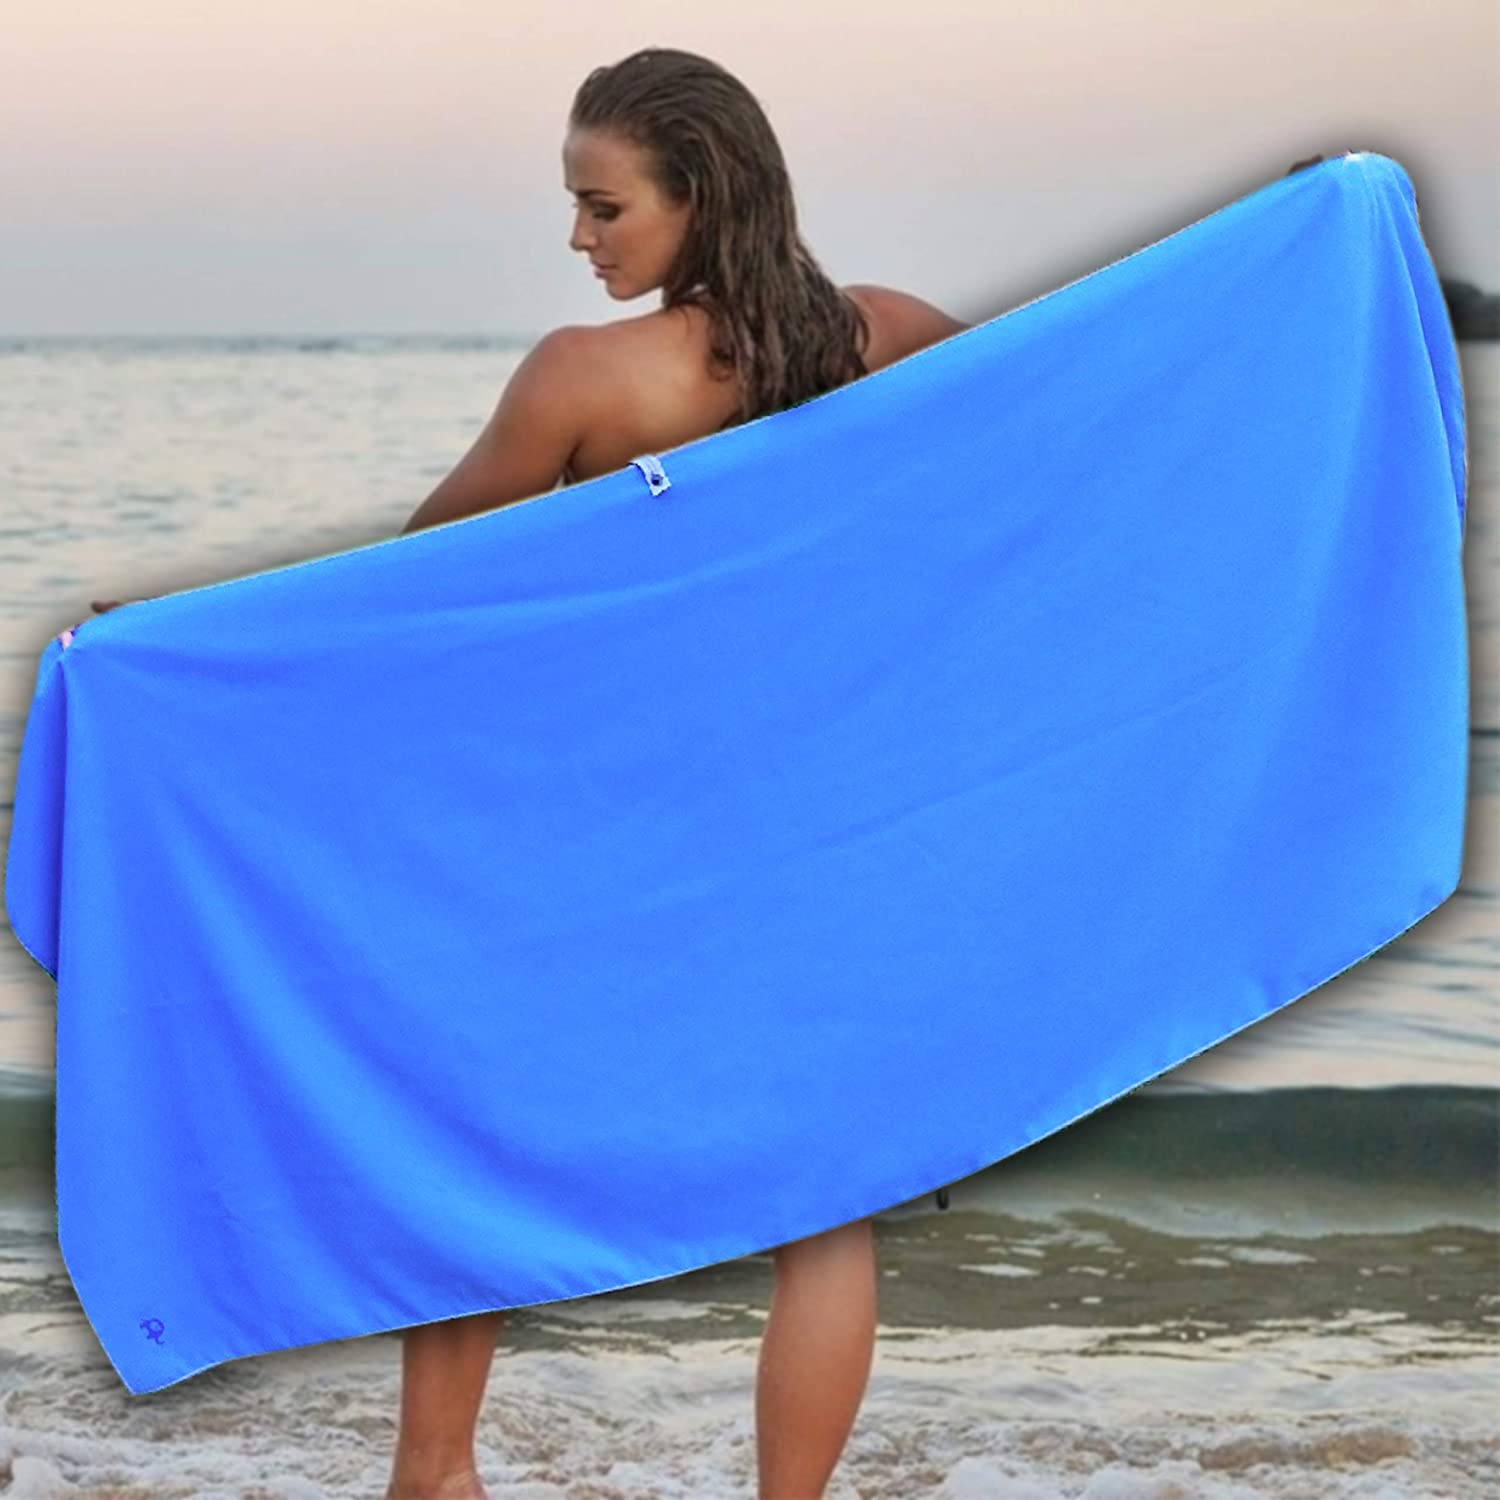 - Thin Lightweight Sand Free Towels Small 31x16 XL 71 x 31 and Elite Trend Microfiber Quick Dry Travel Towel:for Gym /& Sports 2 Sizes: